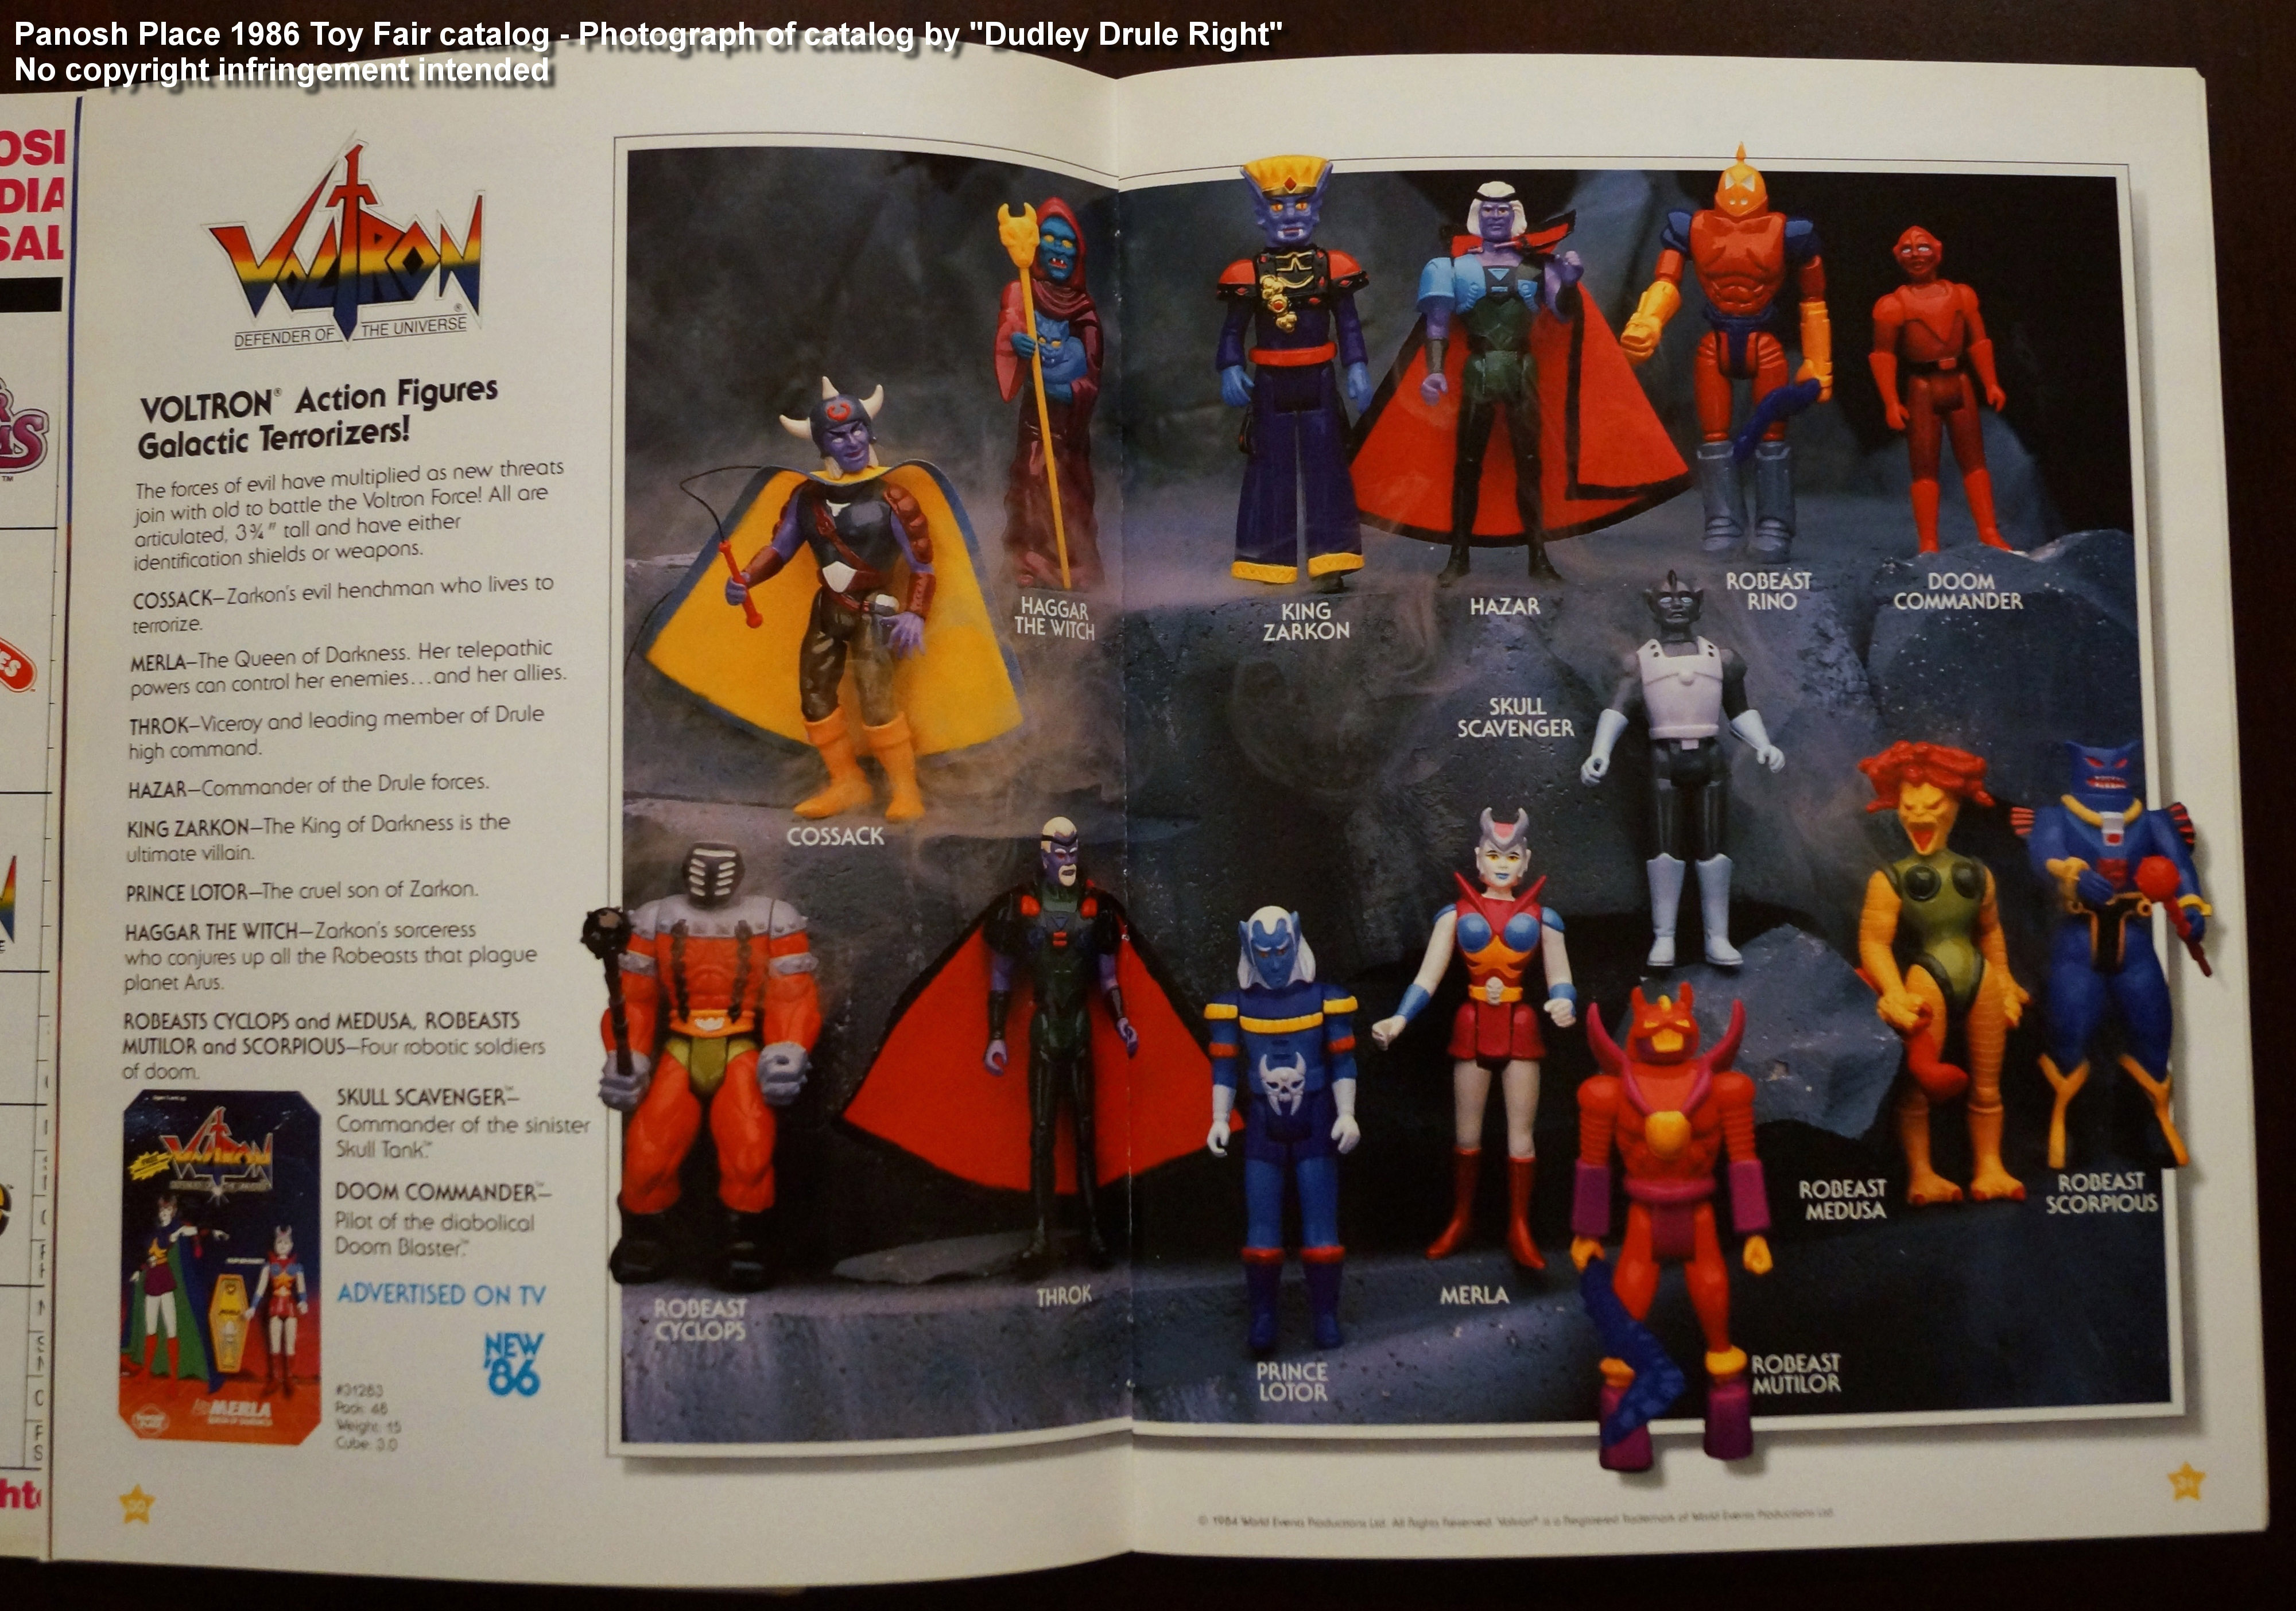 Panosh Place 1986 Toy Fair Catalog - Pages 30 and 31 (Voltron Galactic Terrorizers action figures)